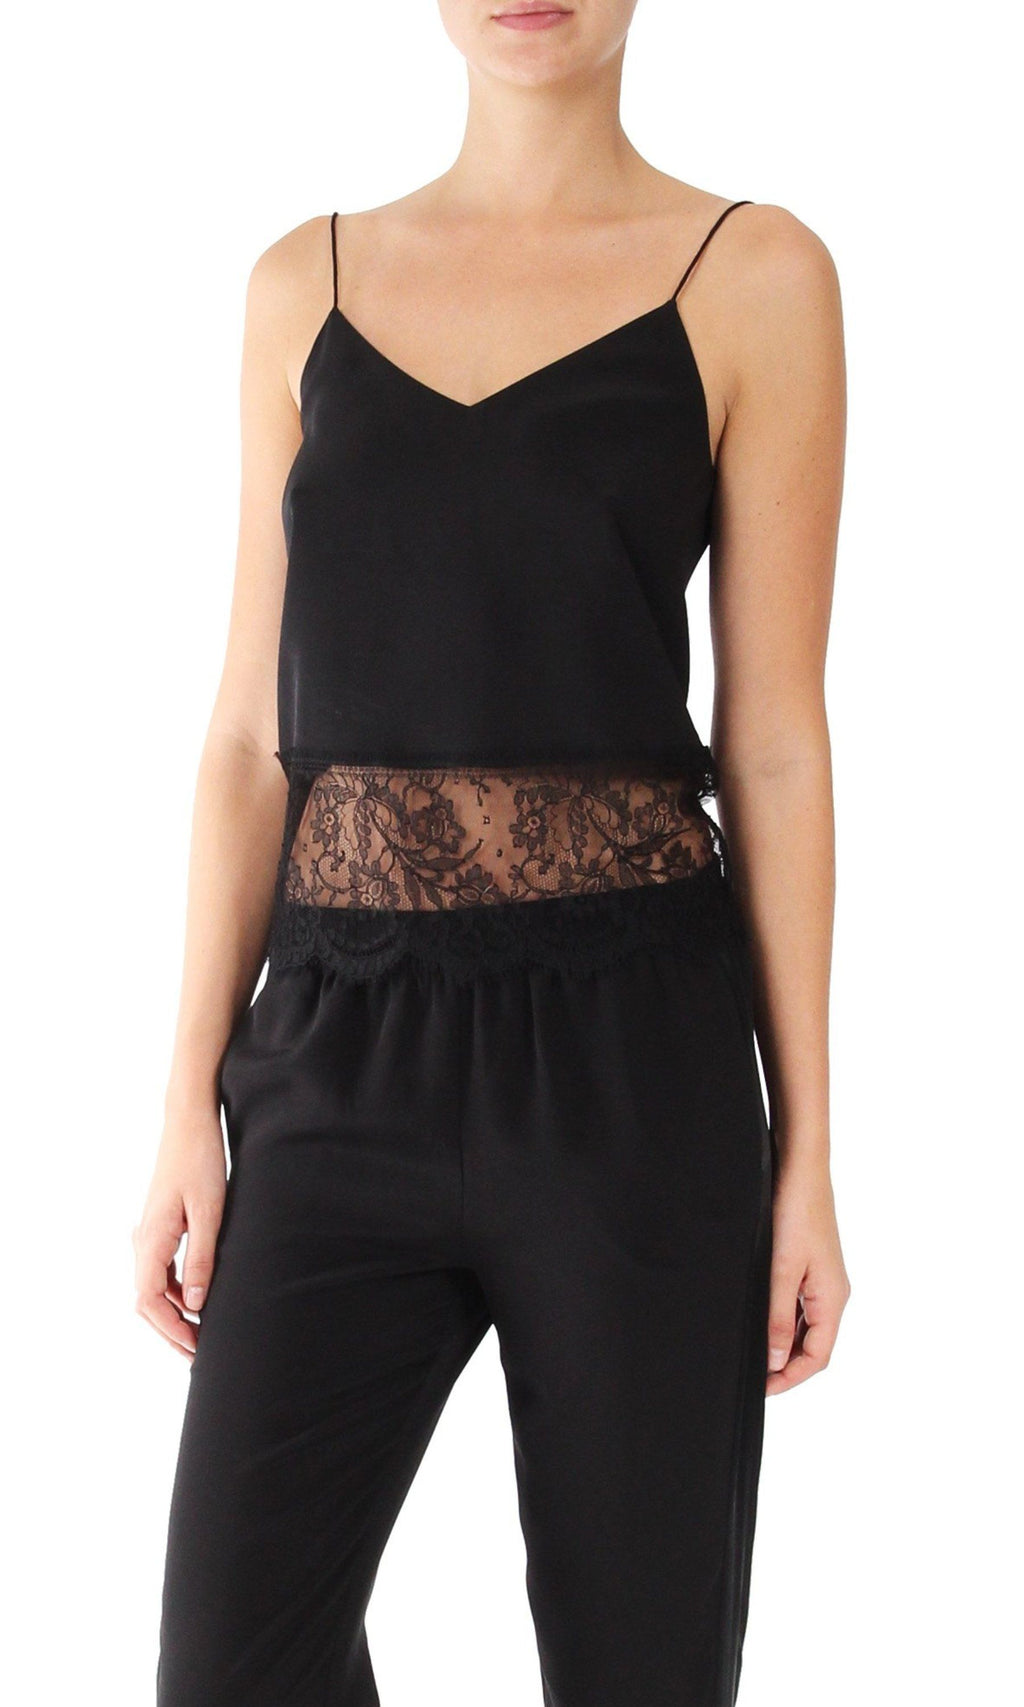 V Shaped Cami with Lace Tops Marie France Van Damme 0 Black